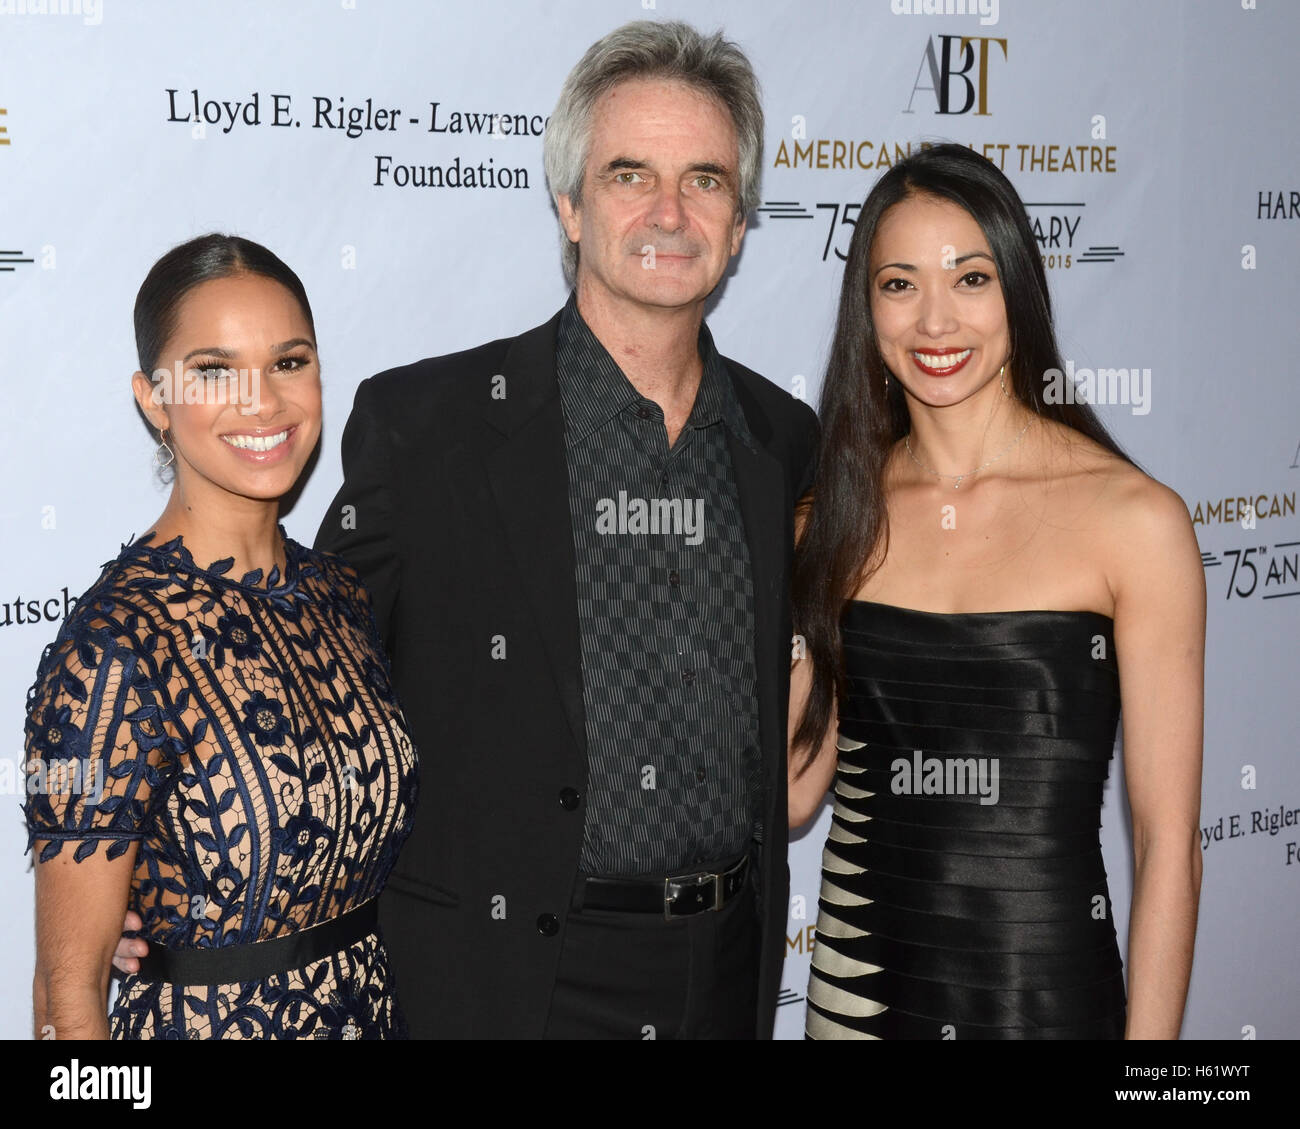 Misty Copeland, (L), Kevin McKenzie (C), Stella Abrera (R) arrives at the American Ballet Theatre 75th Anniversary - Stock Image